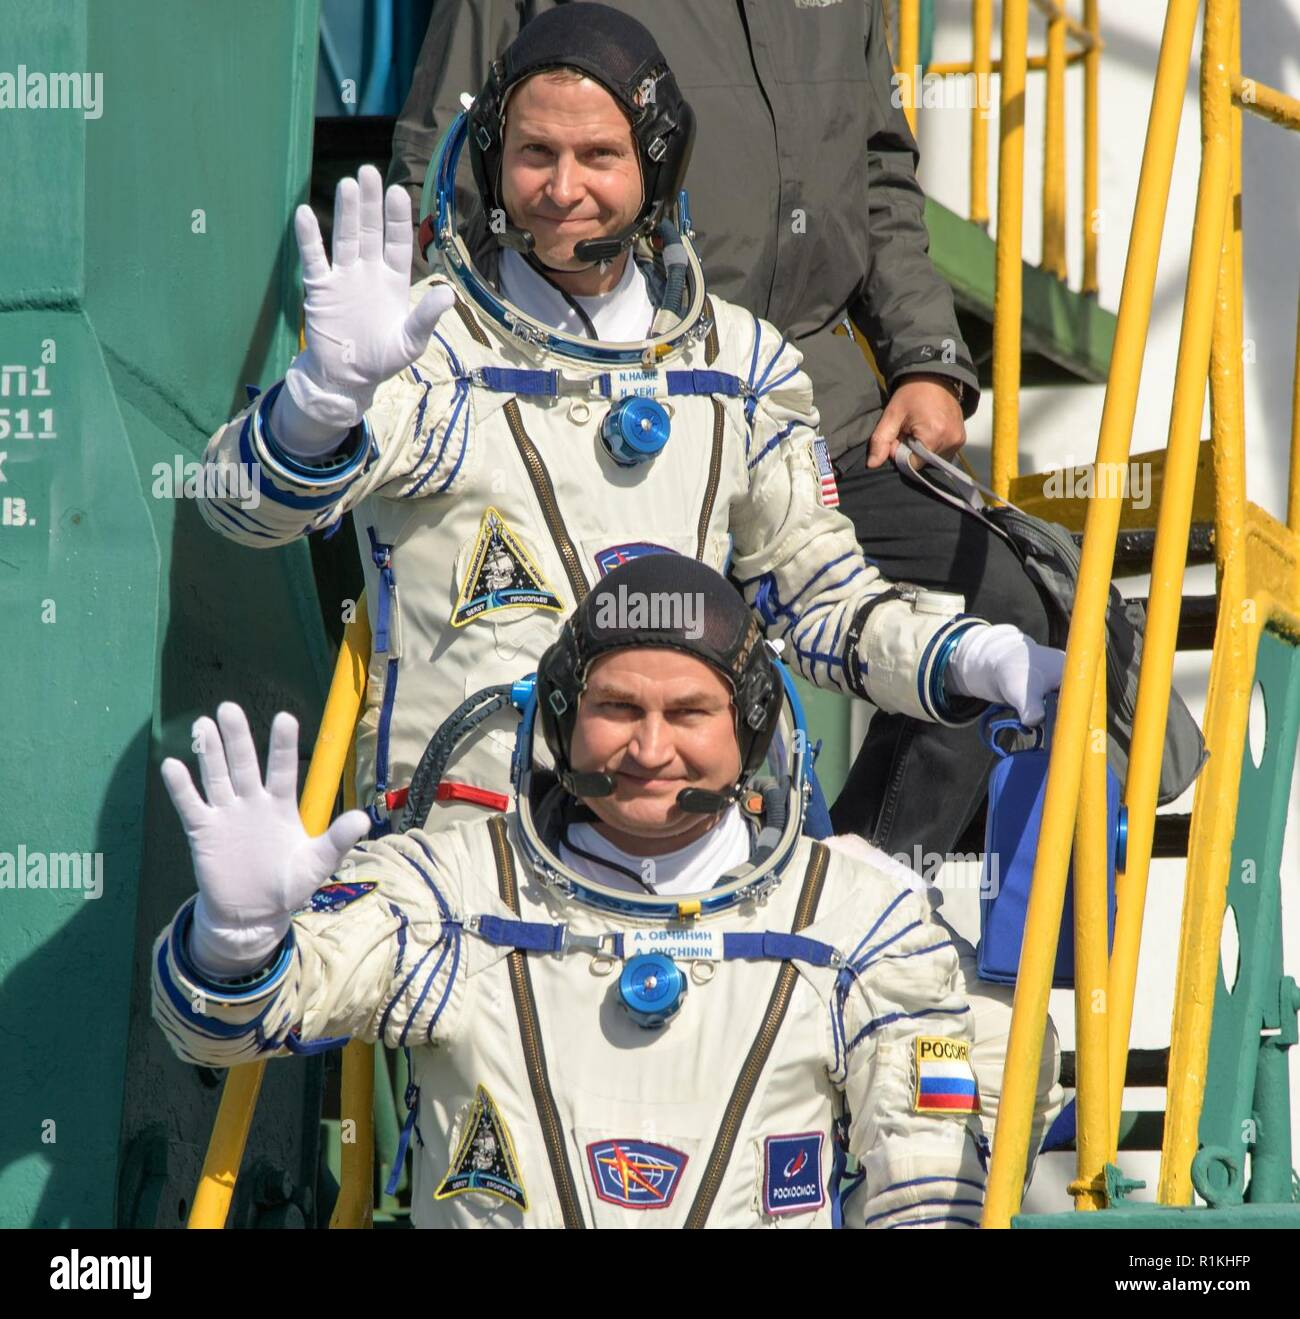 Expedition 57 Flight Engineer Nick Hague of NASA, top, and Flight Engineer Alexey Ovchinin of Roscosmos, wave farewell prior to boarding the Soyuz MS-10 spacecraft for launch, Thursday, Oct. 11, 2018 at the Baikonur Cosmodrome in Kazakhstan. Hague and Ovchinin will spend the next six months living and working aboard the International Space Station. - Stock Image